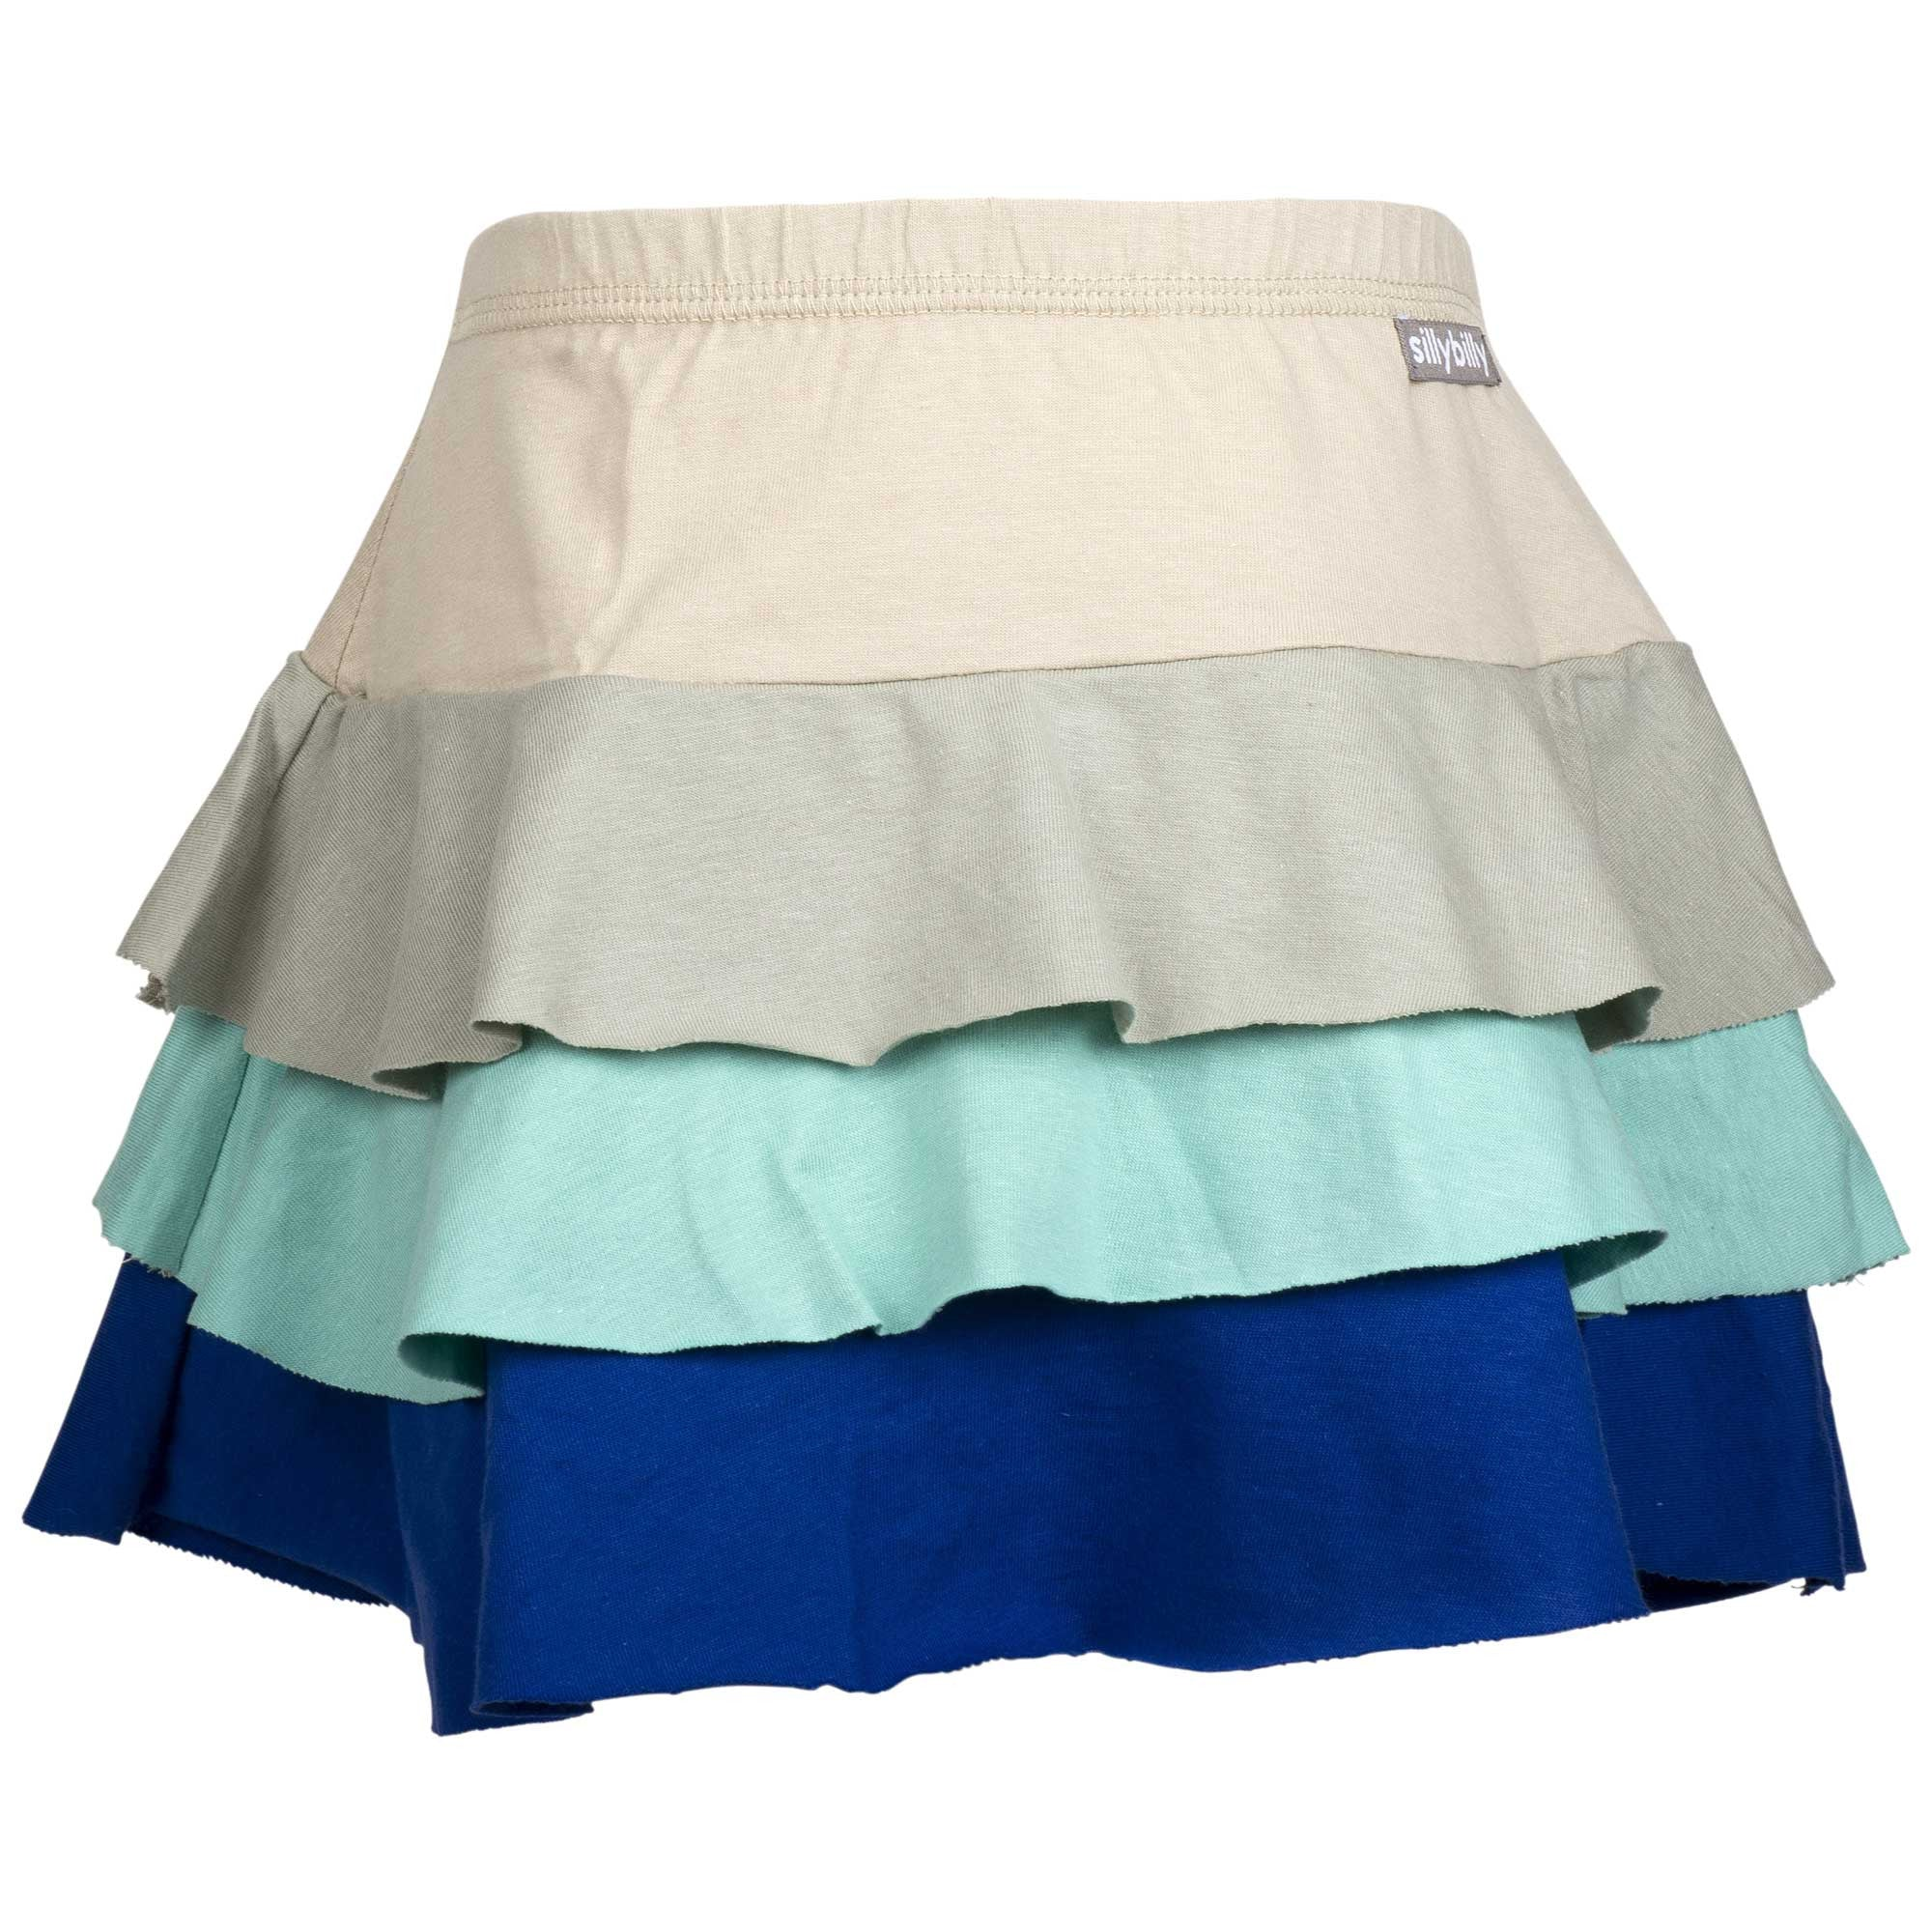 Carnival tiered skirt